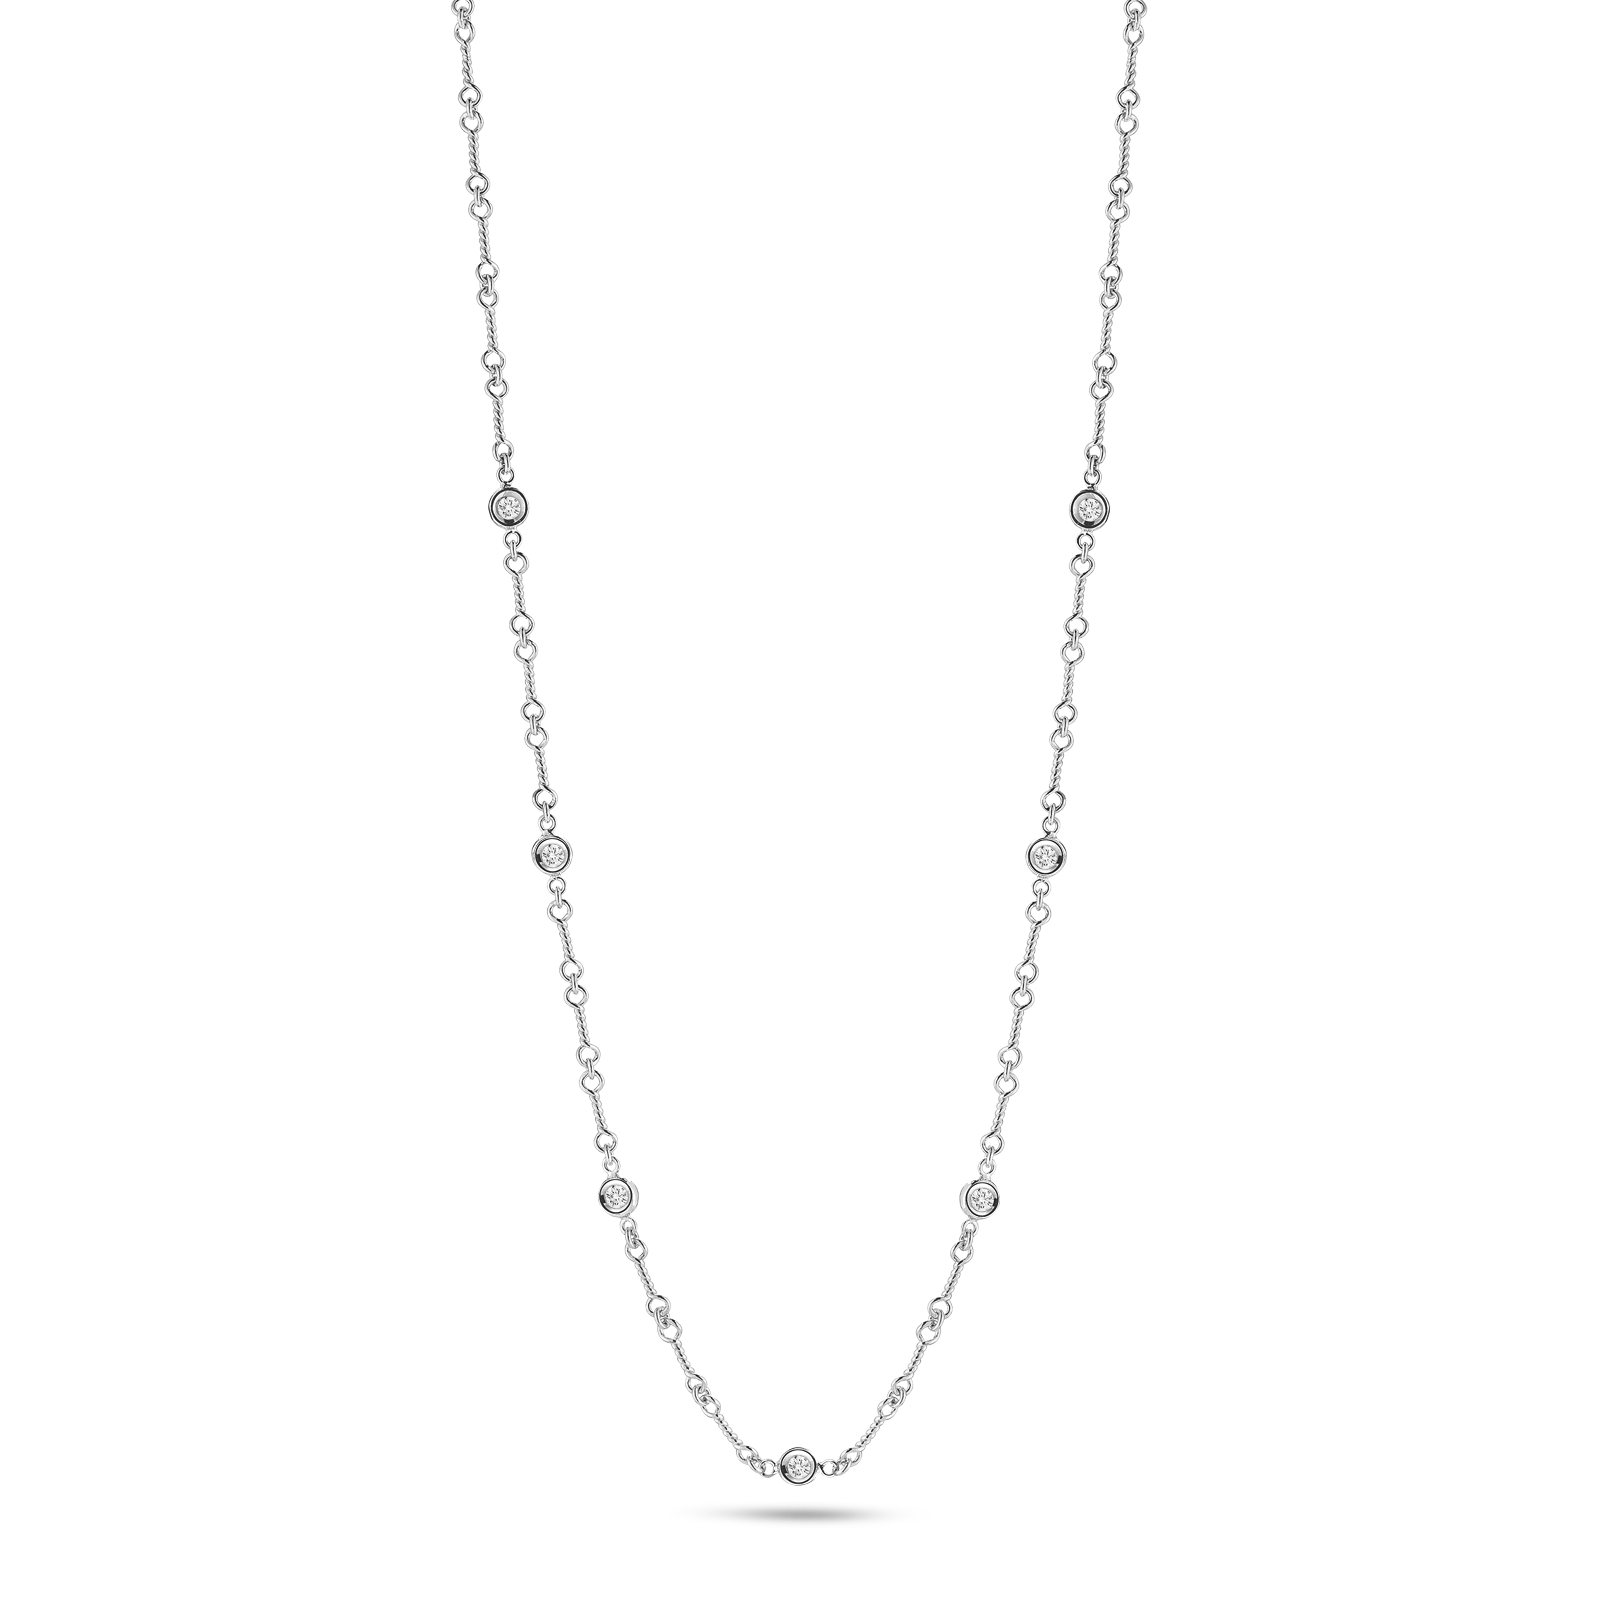 18K White Gold Dogbone 7 Station Necklace With Diamonds